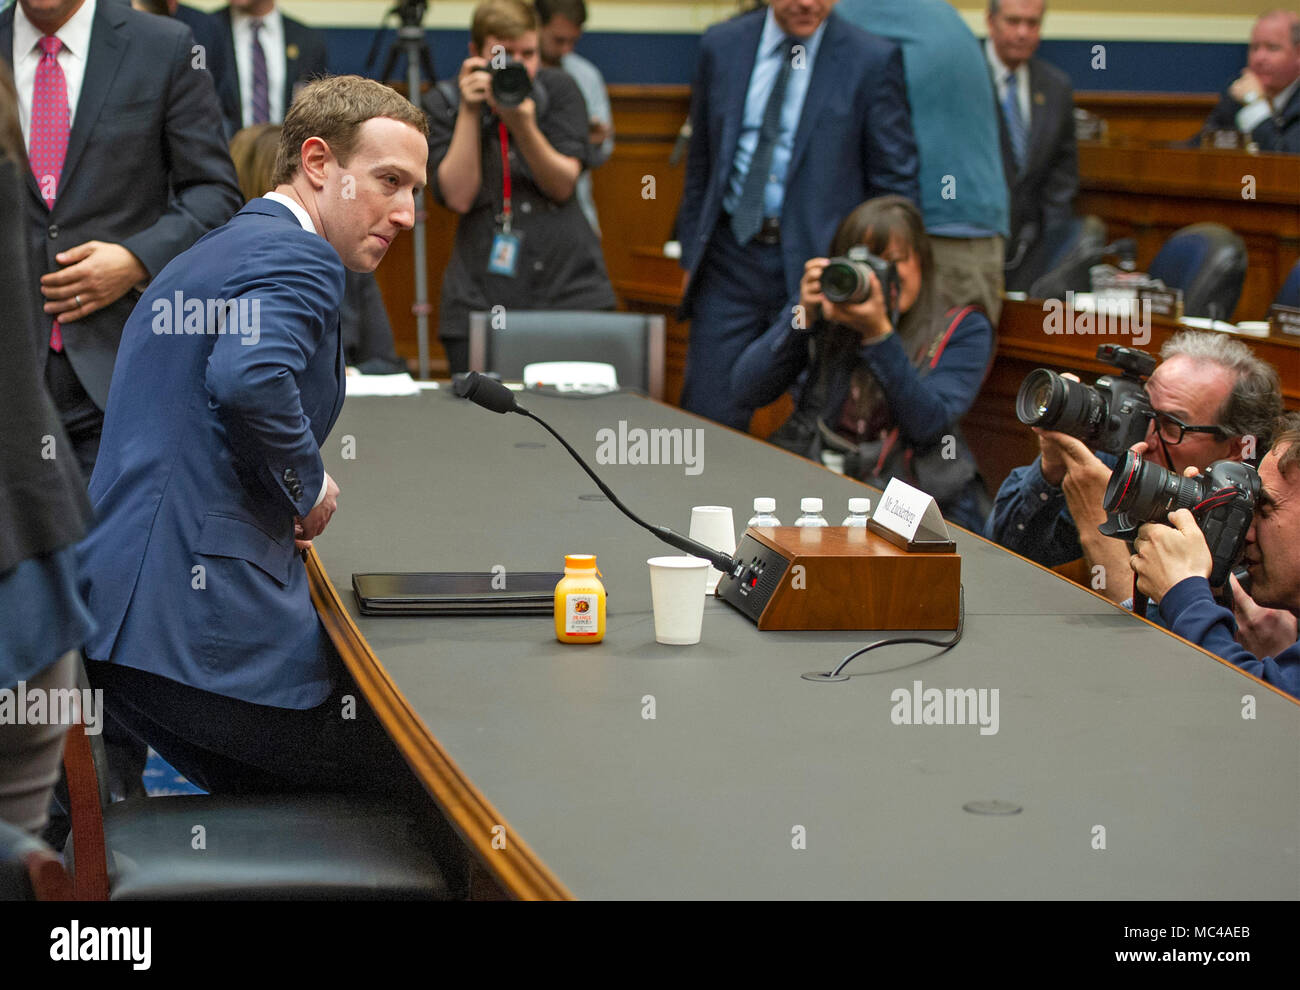 Mark Zuckerberg Co Founder And Ceo Of Facebook Returns To His Seat To Resume His Testimony Before A Meeting Of The United States House Committee On Energy And Commerce During A Hearing On